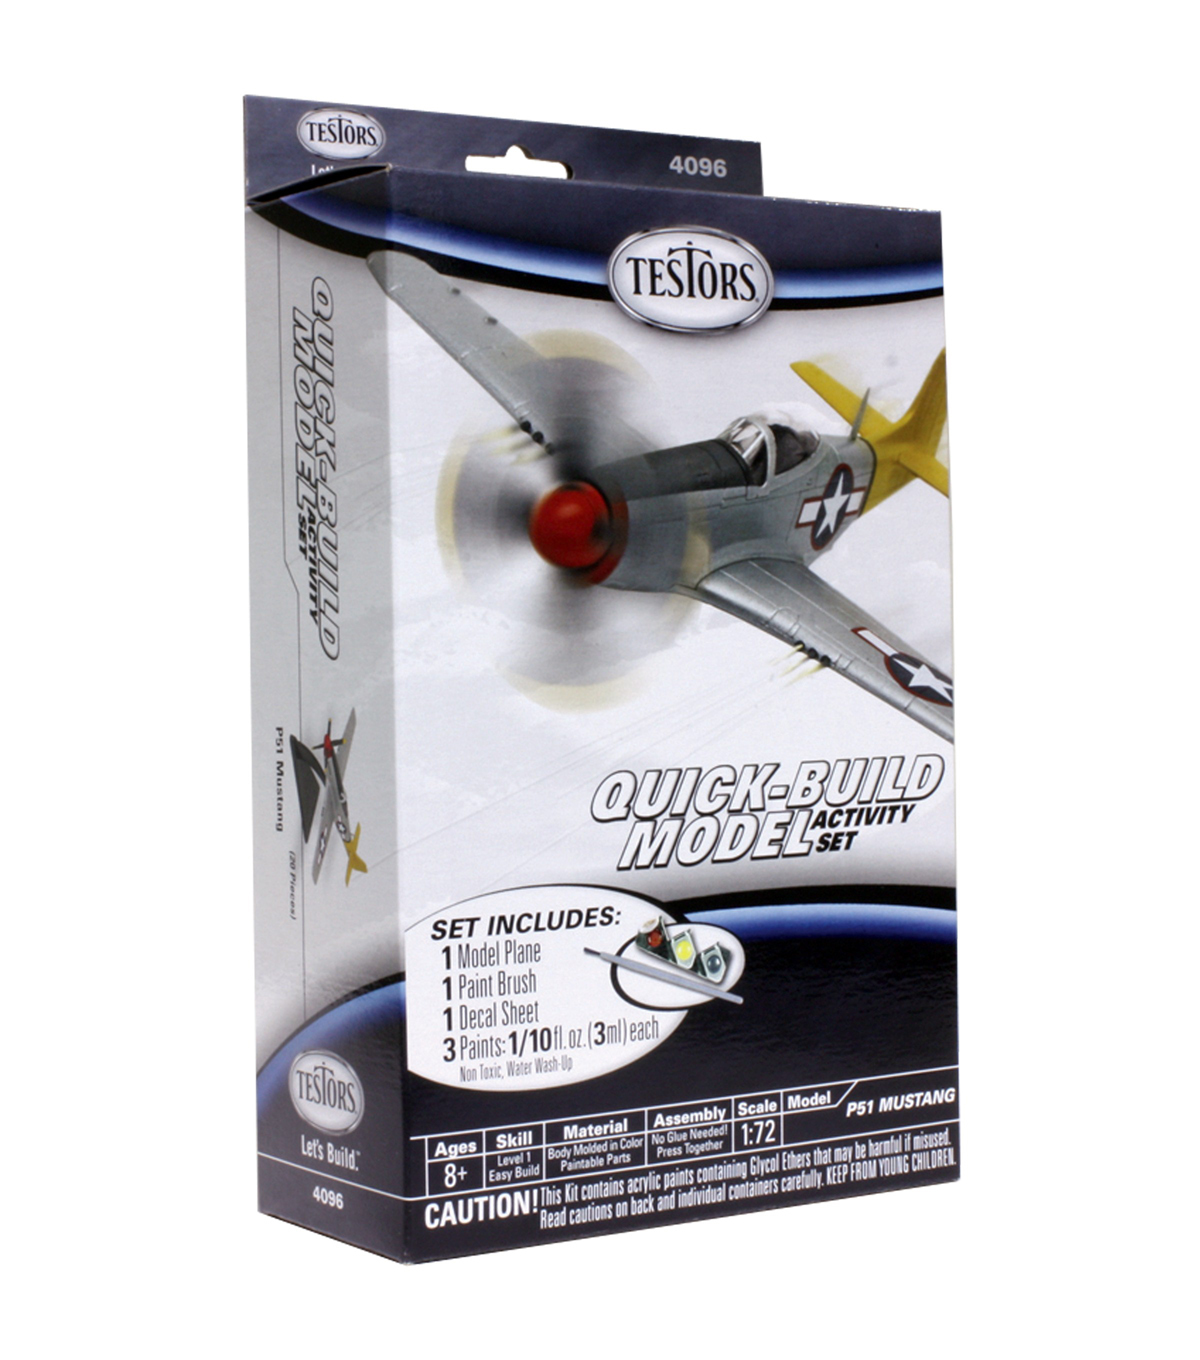 1:72 SCALE P-51 MUSTANG Model Kit